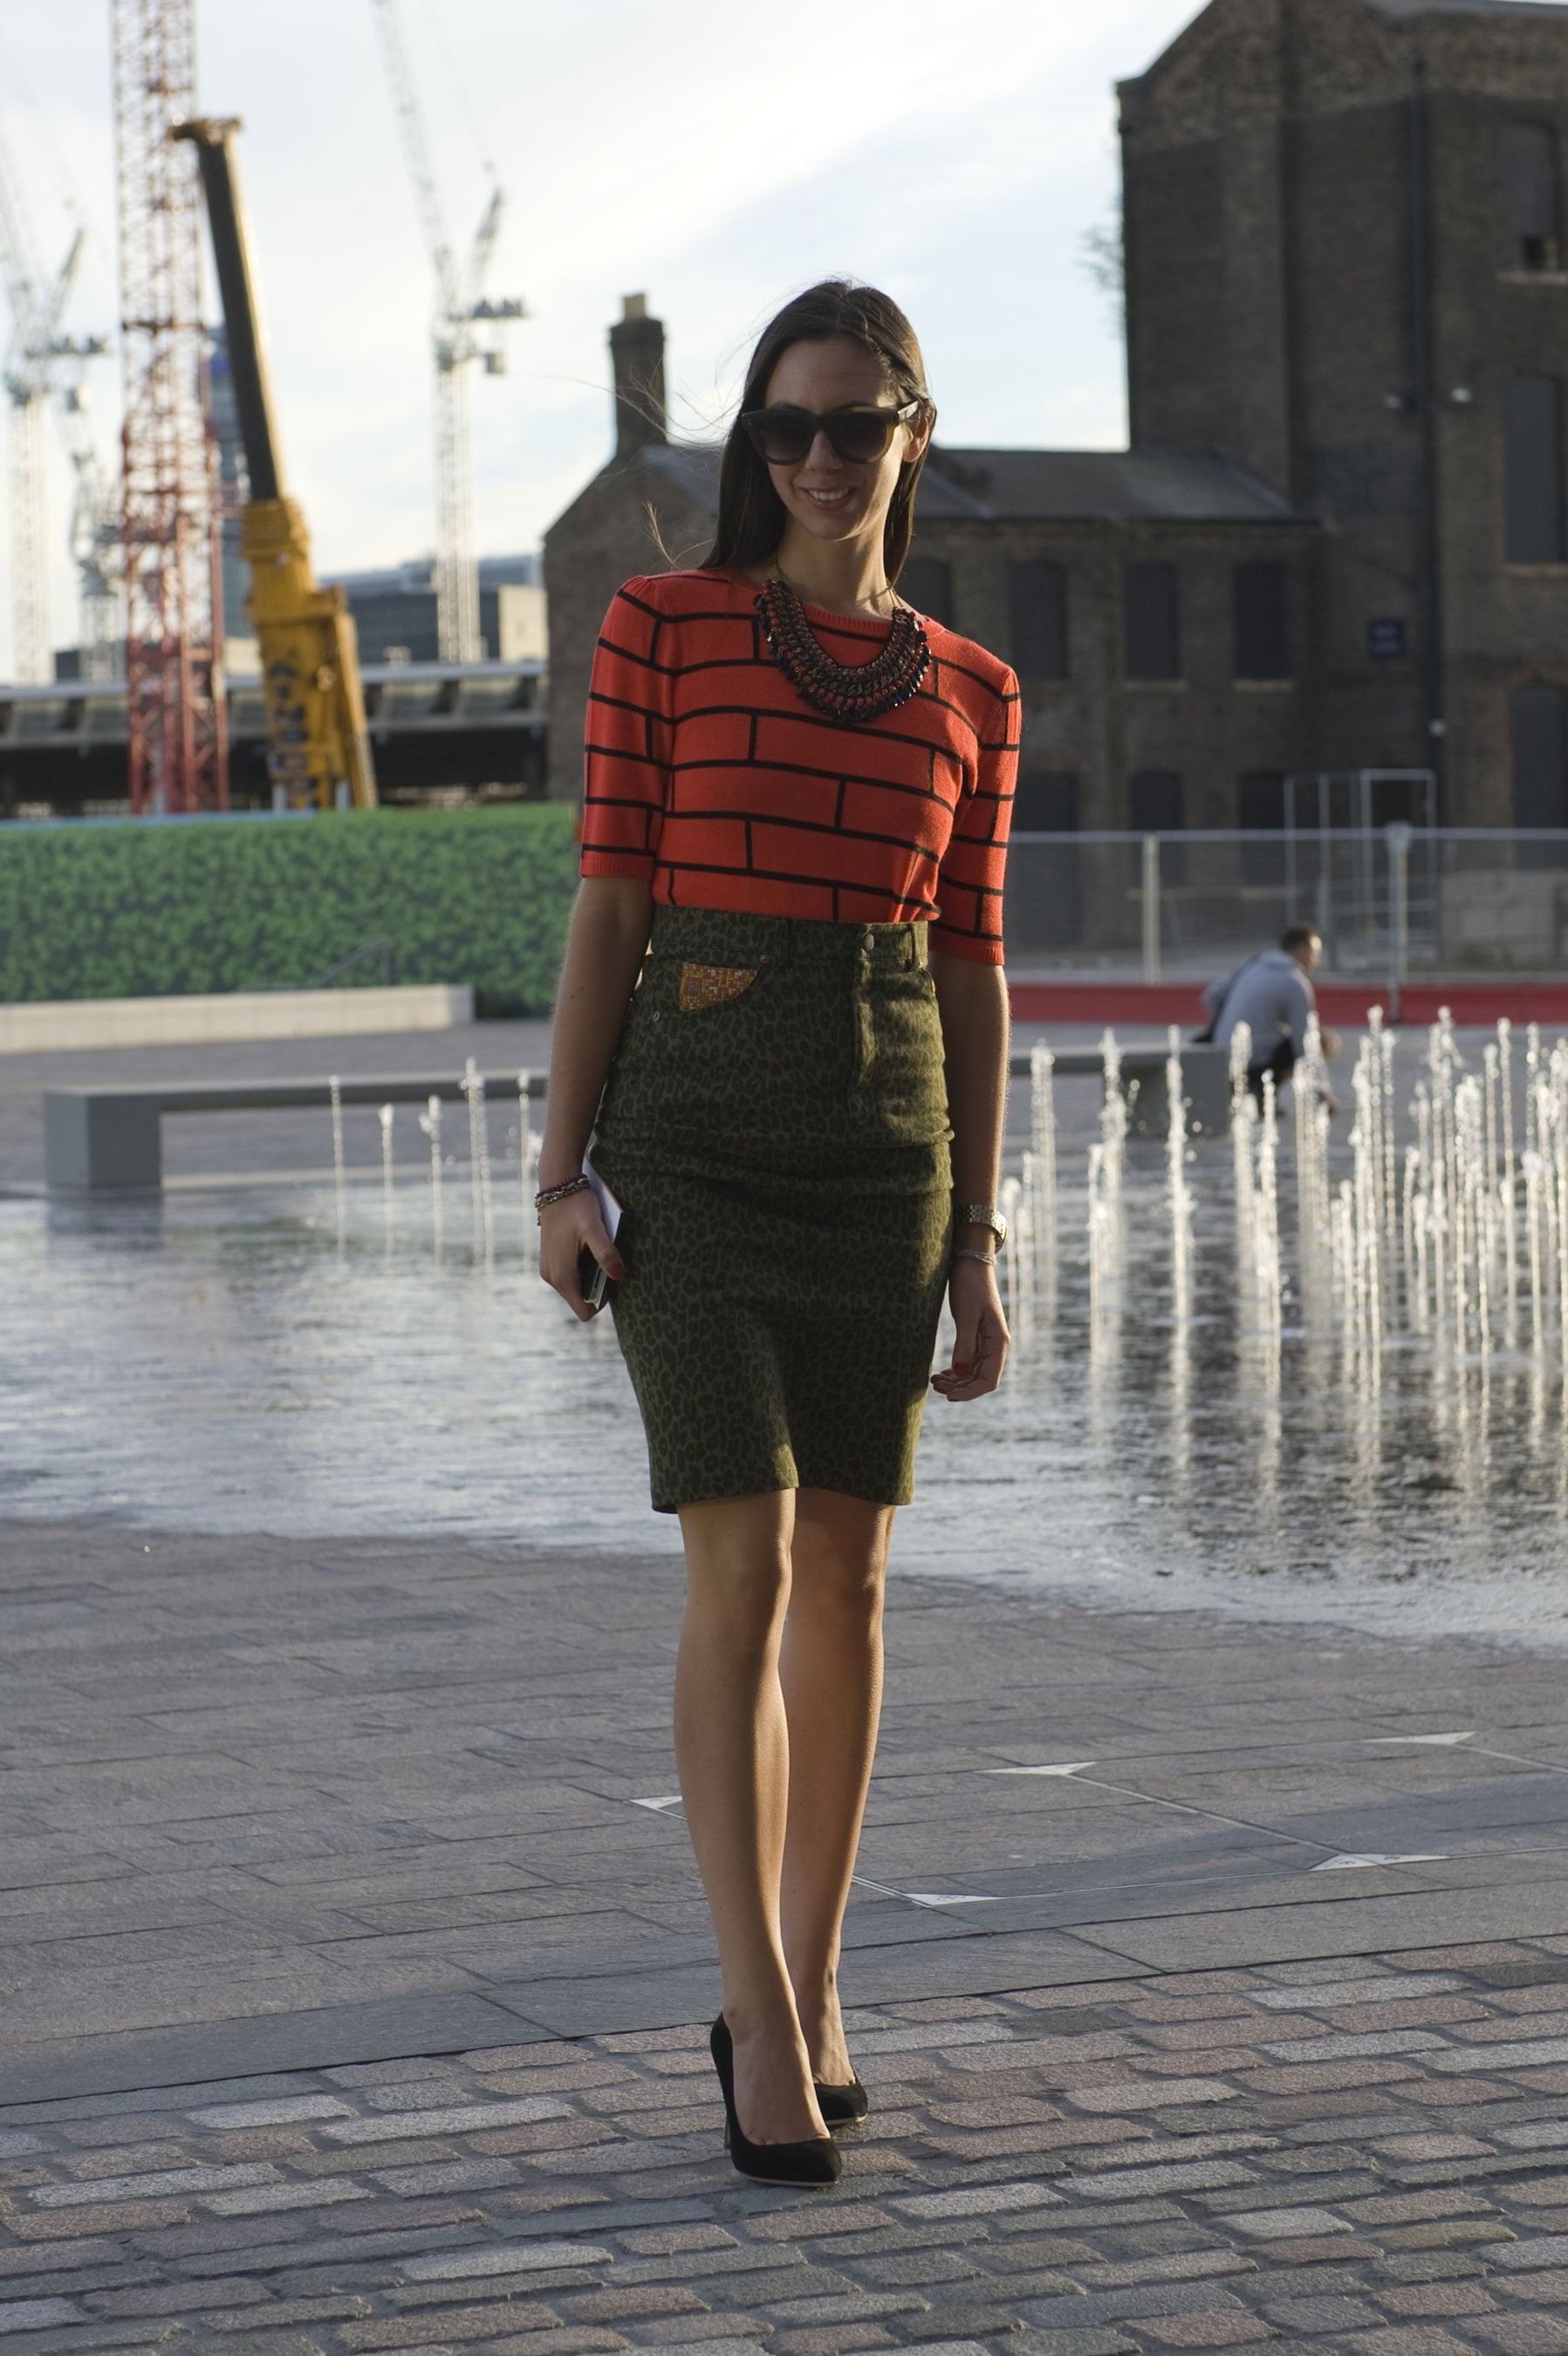 This look was Fall-perfect based on cool autumnal hues alone. Add to the mix a cheeky brick-patterned top and statement necklace, and you can't go wrong.